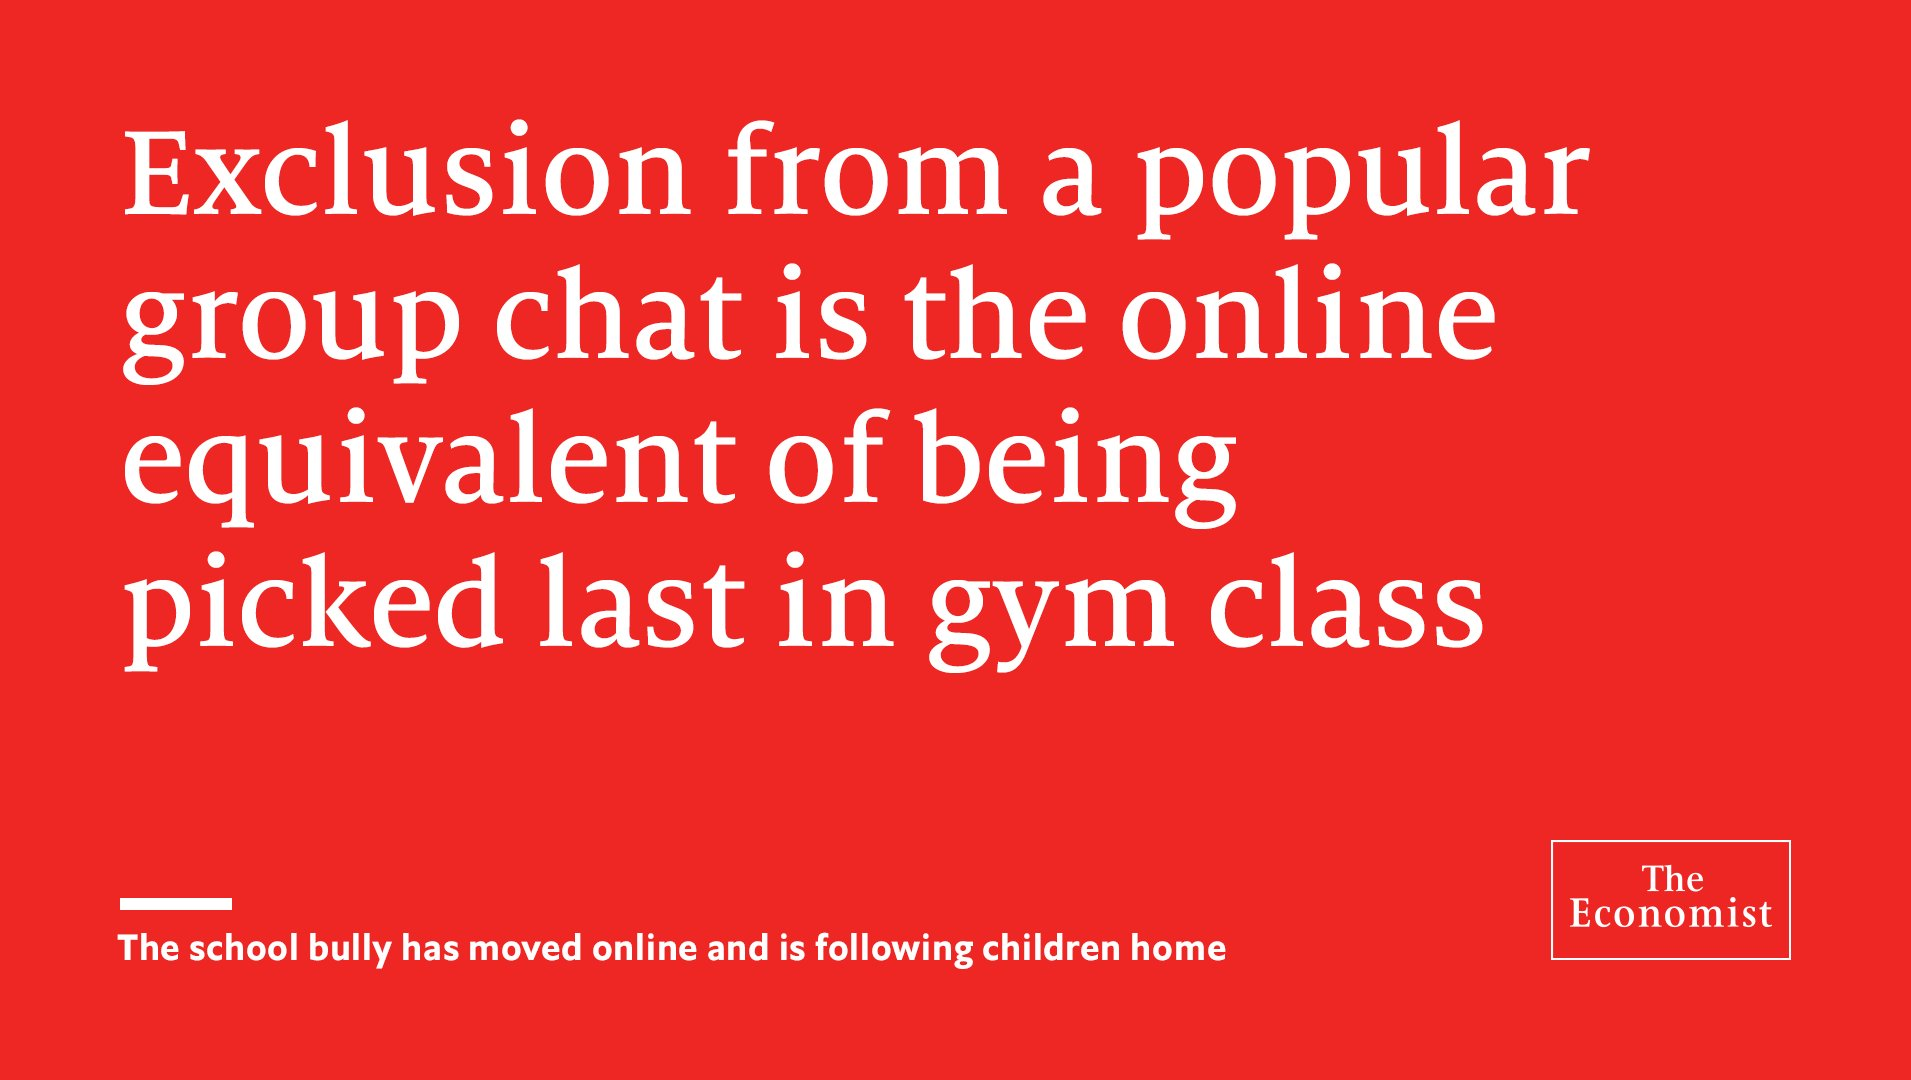 Teachers and parents struggle to recognise the problem of cyber-bullying or to solve it https://t.co/7RbQM5iZS8 https://t.co/CEHiDE2Aya